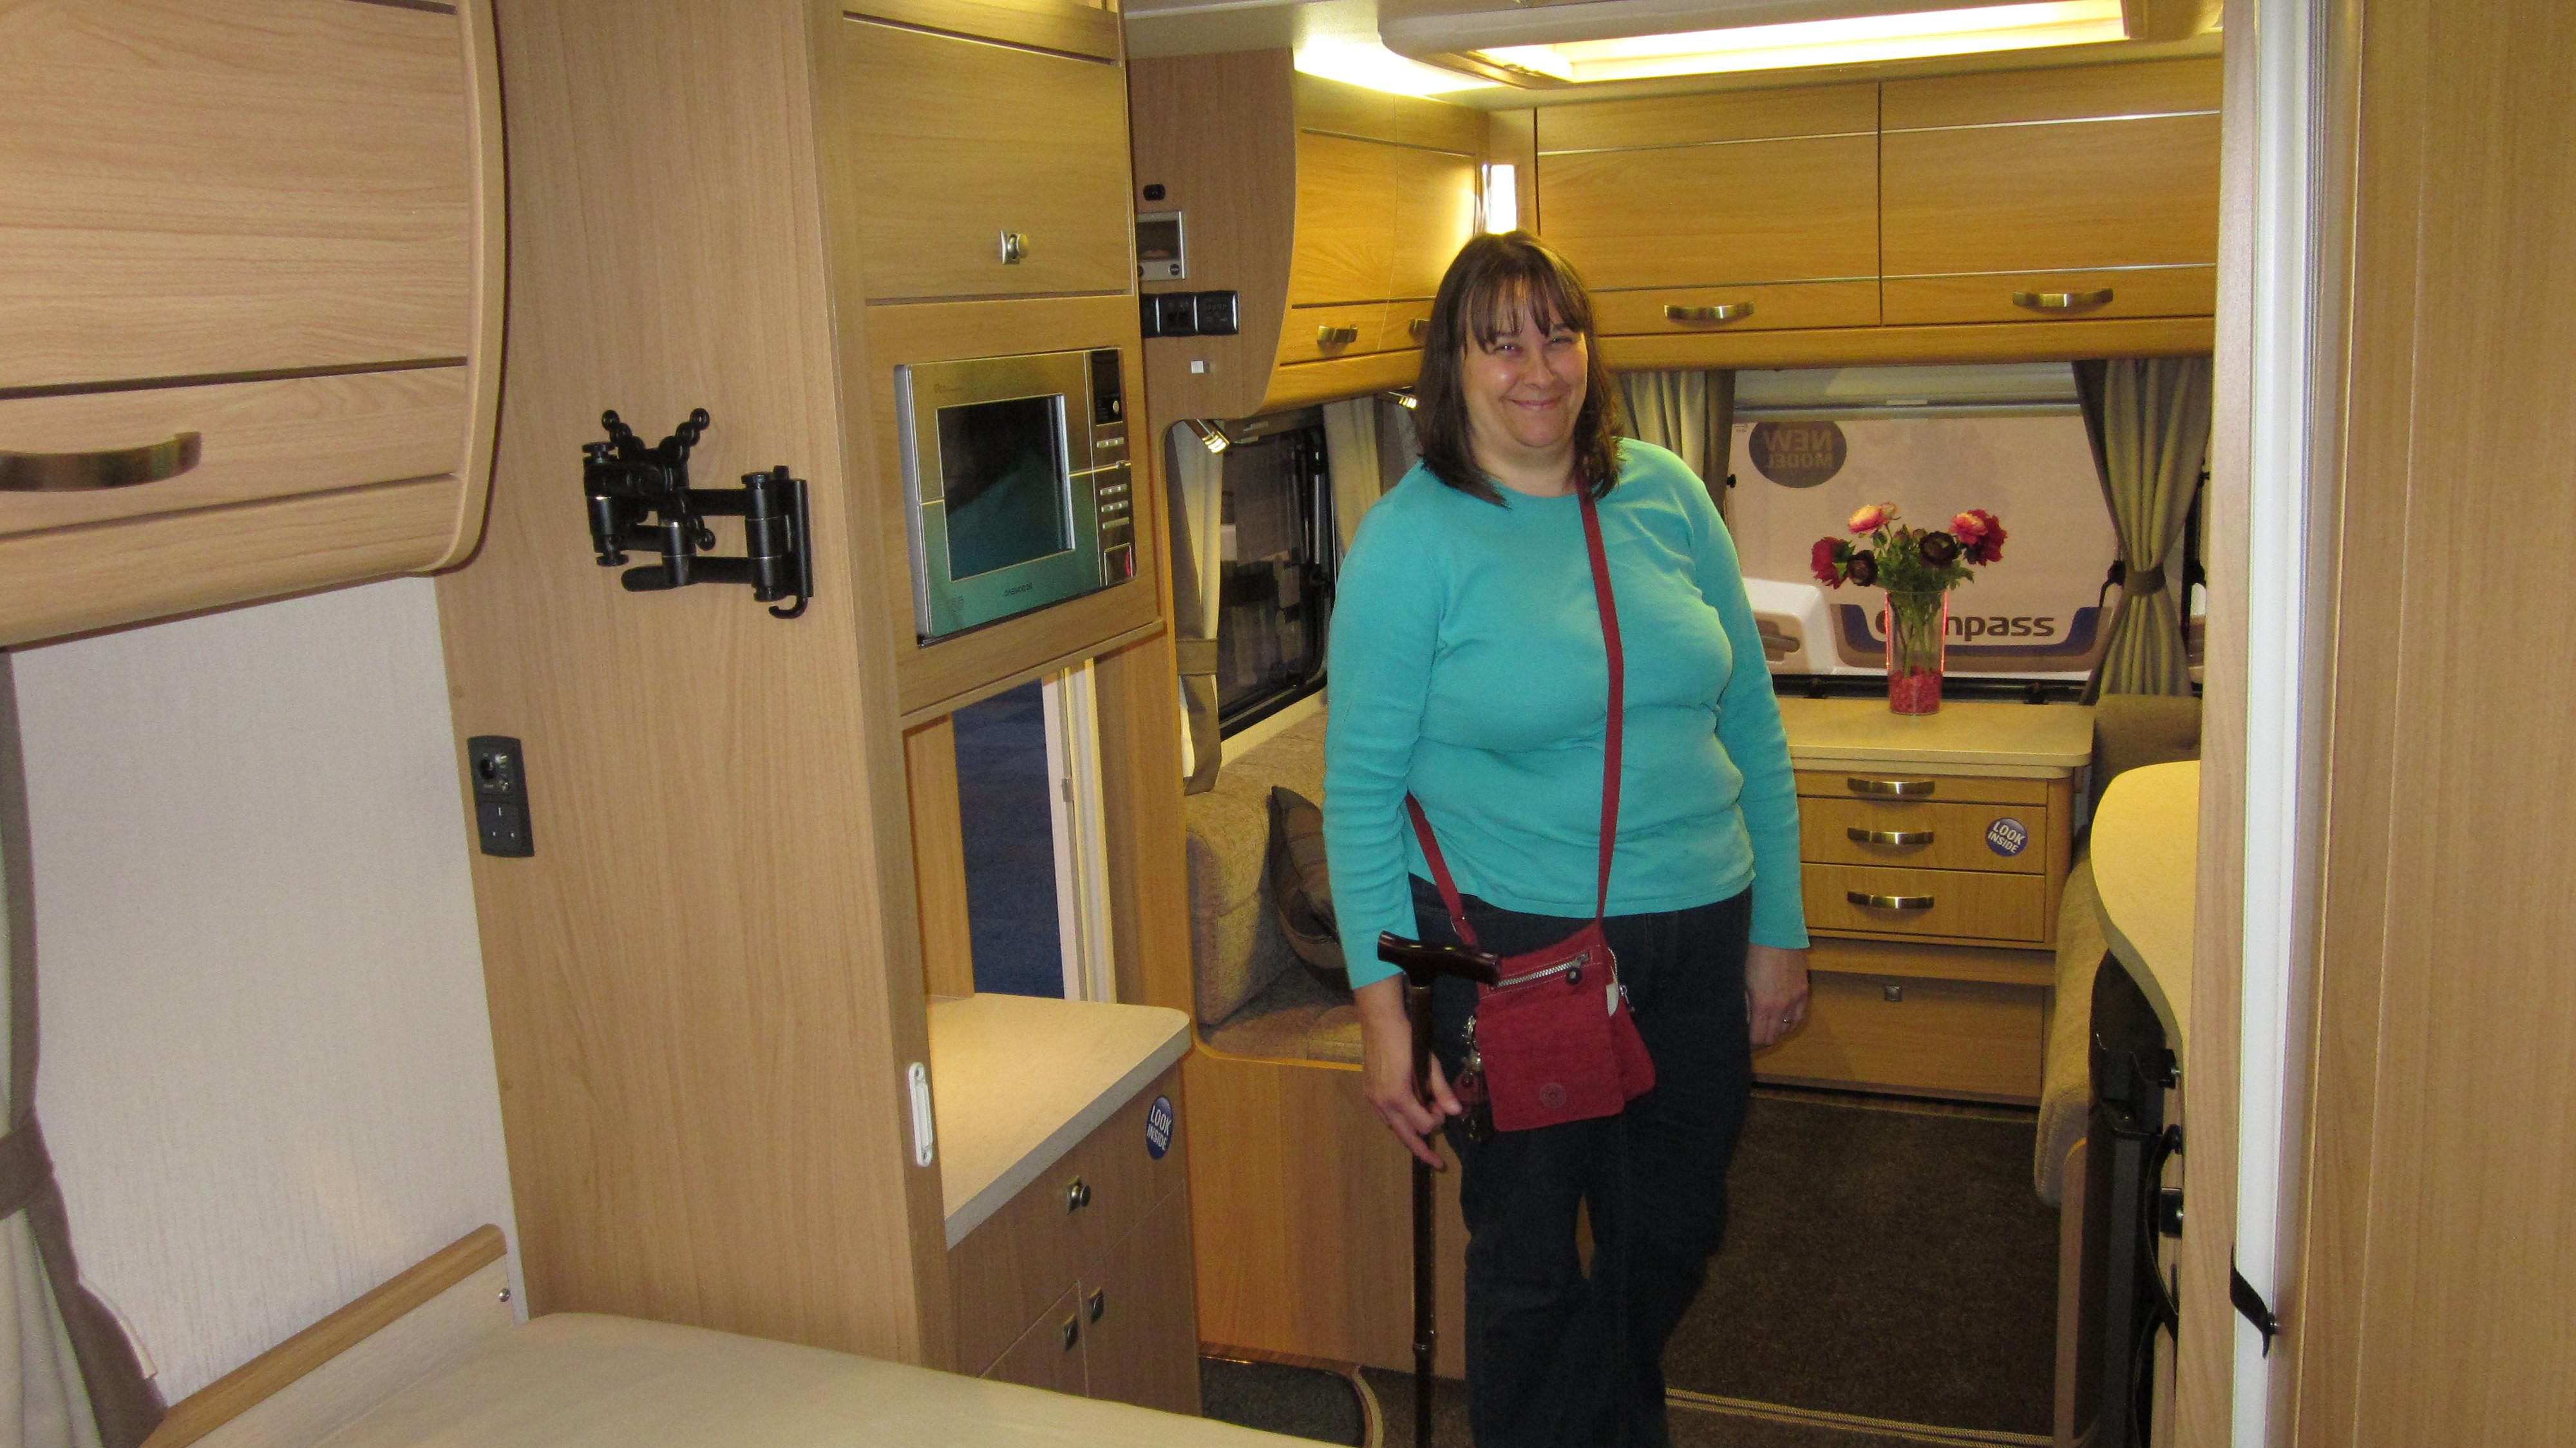 Compass Omega 540 The Interior Of This Caravan Again Gives A Warm